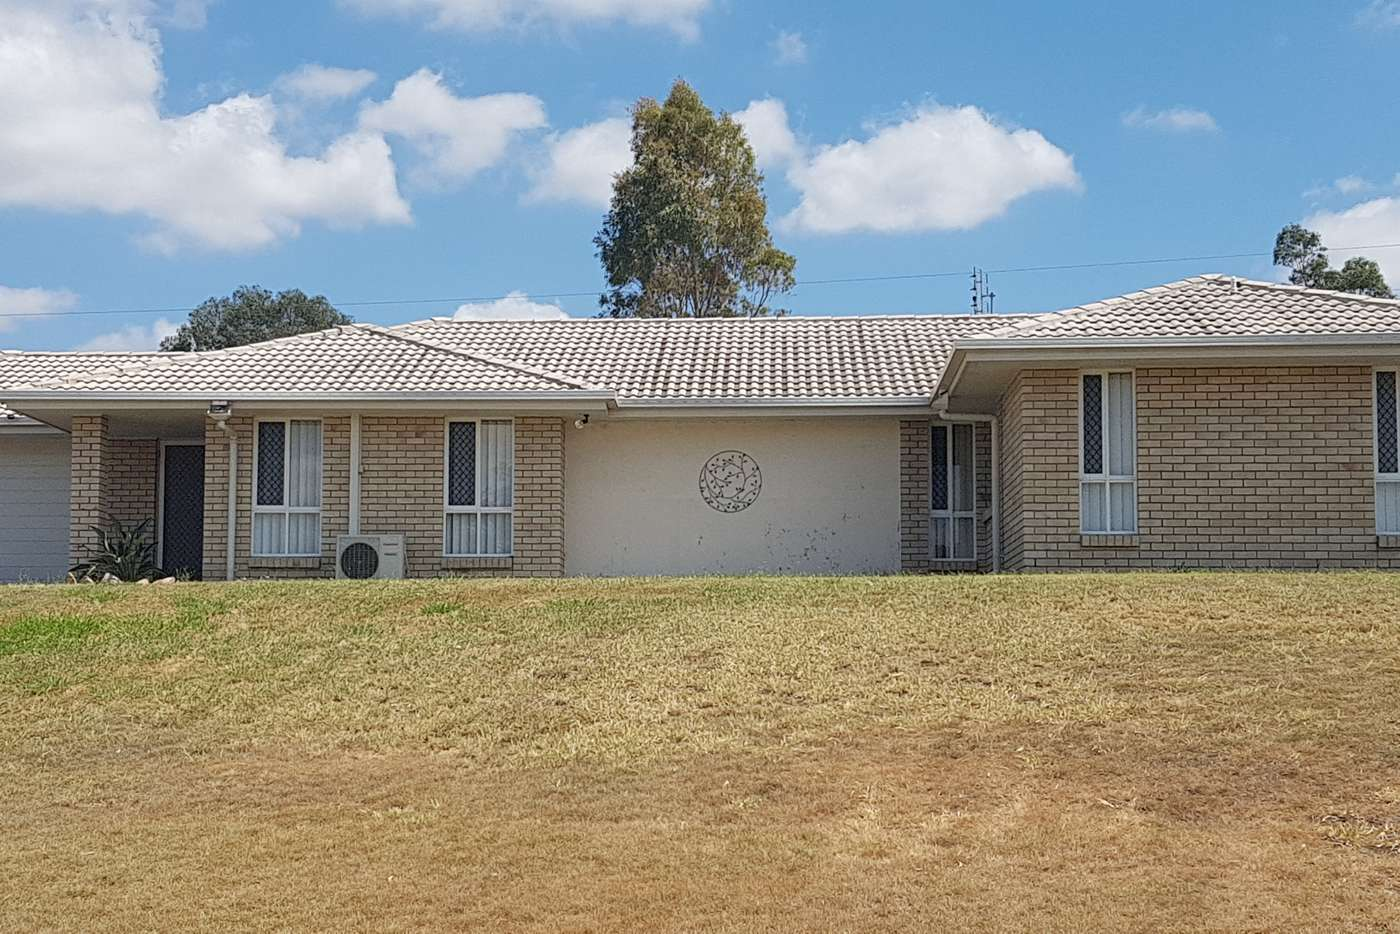 Main view of Homely house listing, 6 Mountain View Drive, Gatton QLD 4343